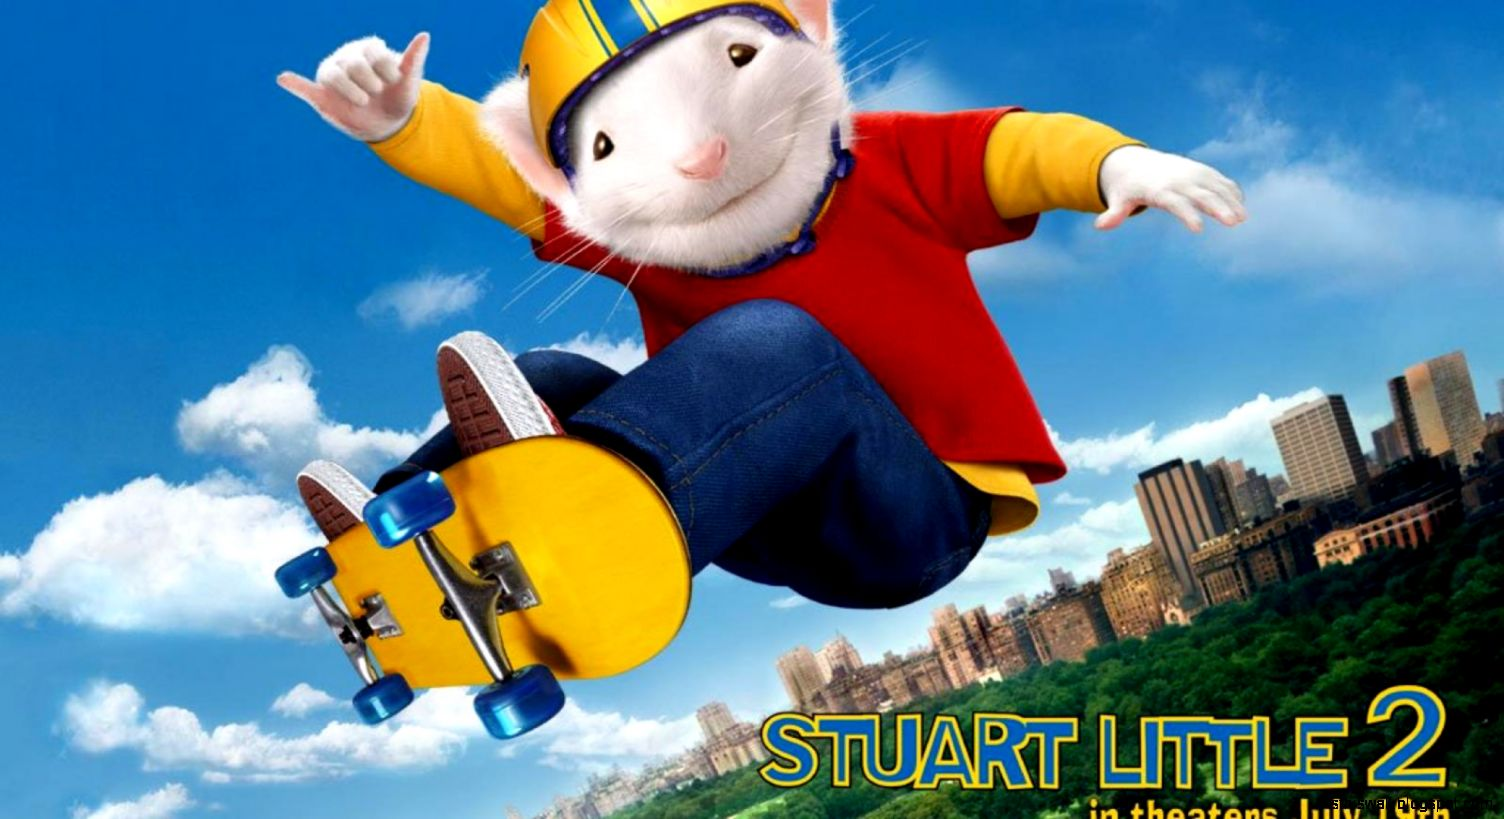 Stuart Little 2 Film Movies   HD Wallpaper 5224